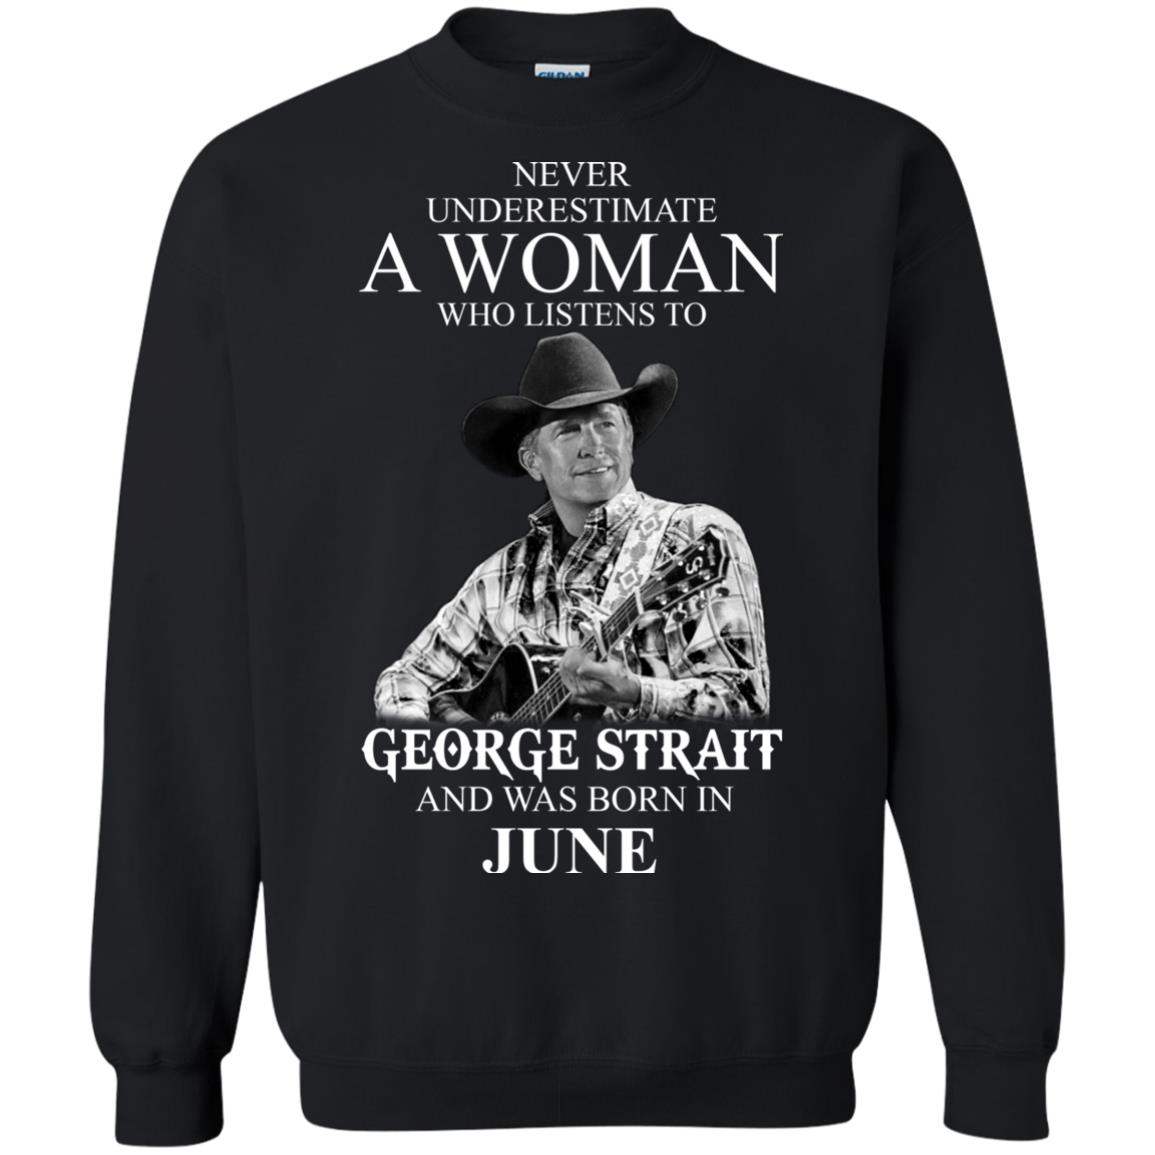 image 488 - Never Underestimate A Woman Who Listens To George Strait And Was Born In June shirt